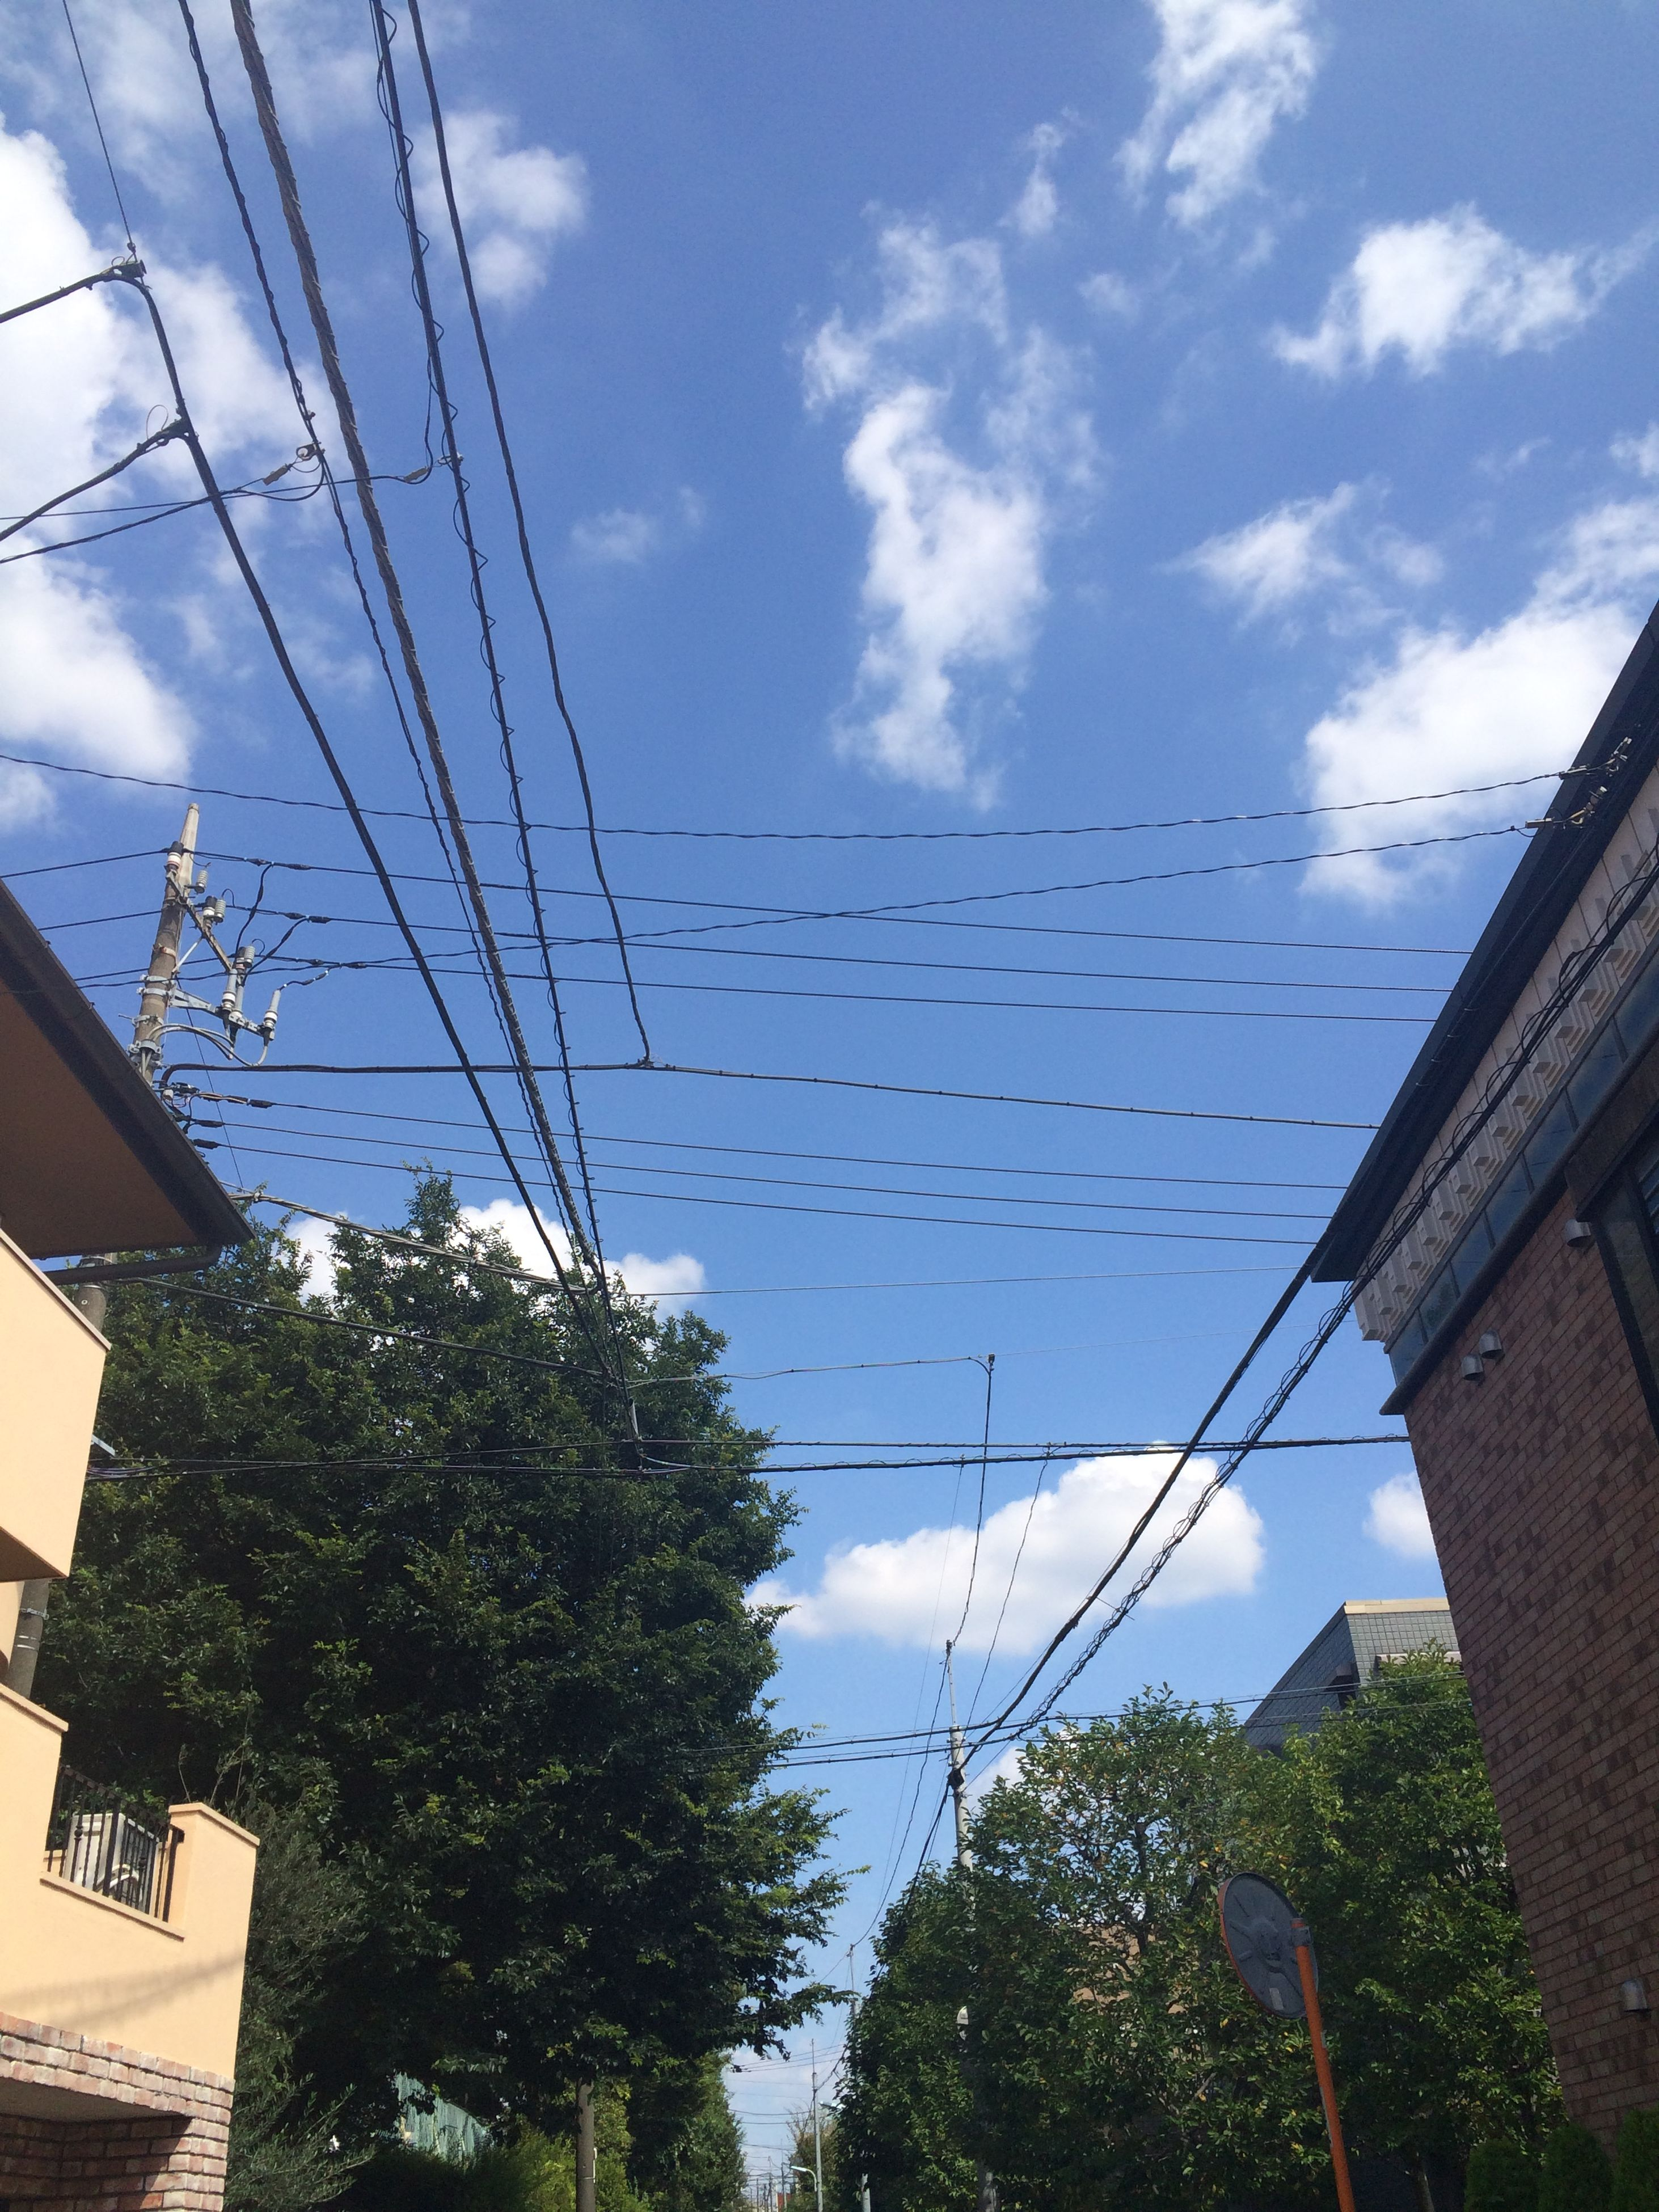 low angle view, sky, built structure, architecture, building exterior, power line, cable, tree, blue, cloud, cloud - sky, day, house, electricity, connection, roof, outdoors, hanging, building, no people